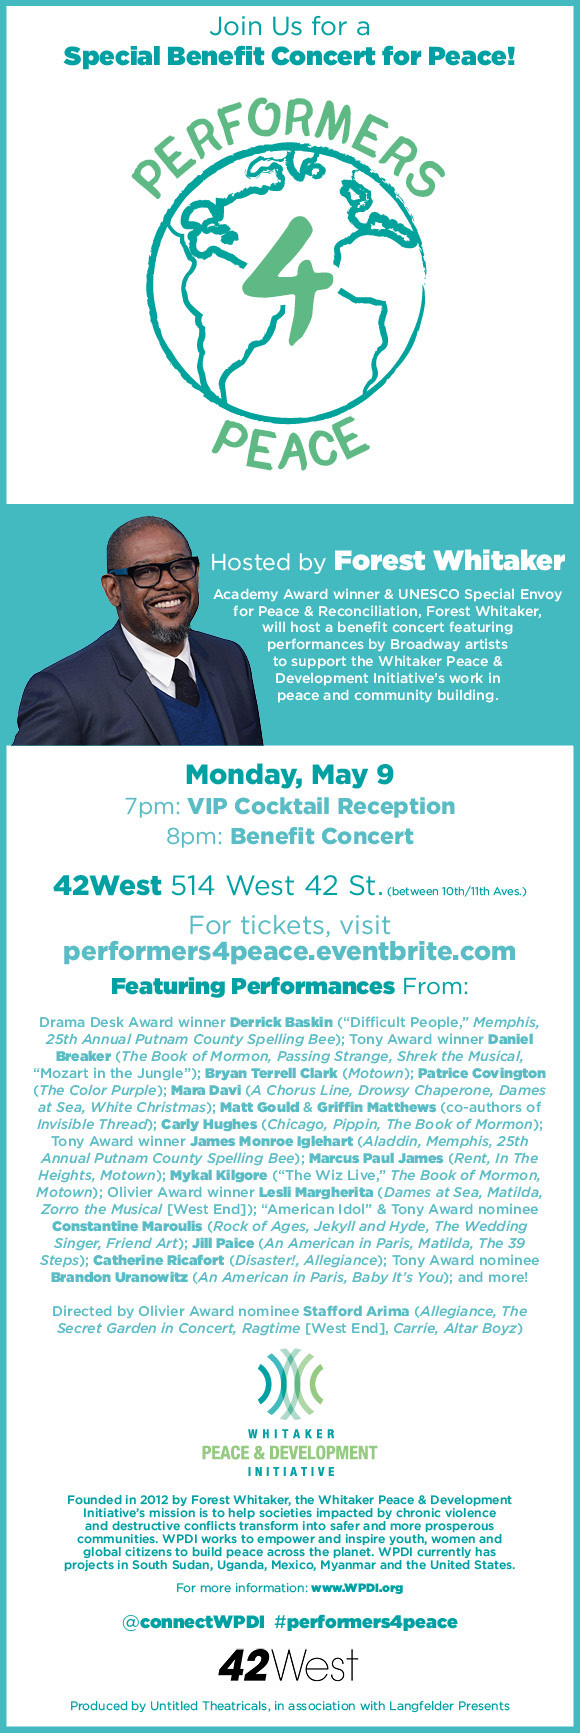 Performers 4 Peace - Forest Whitaker - The Culture News